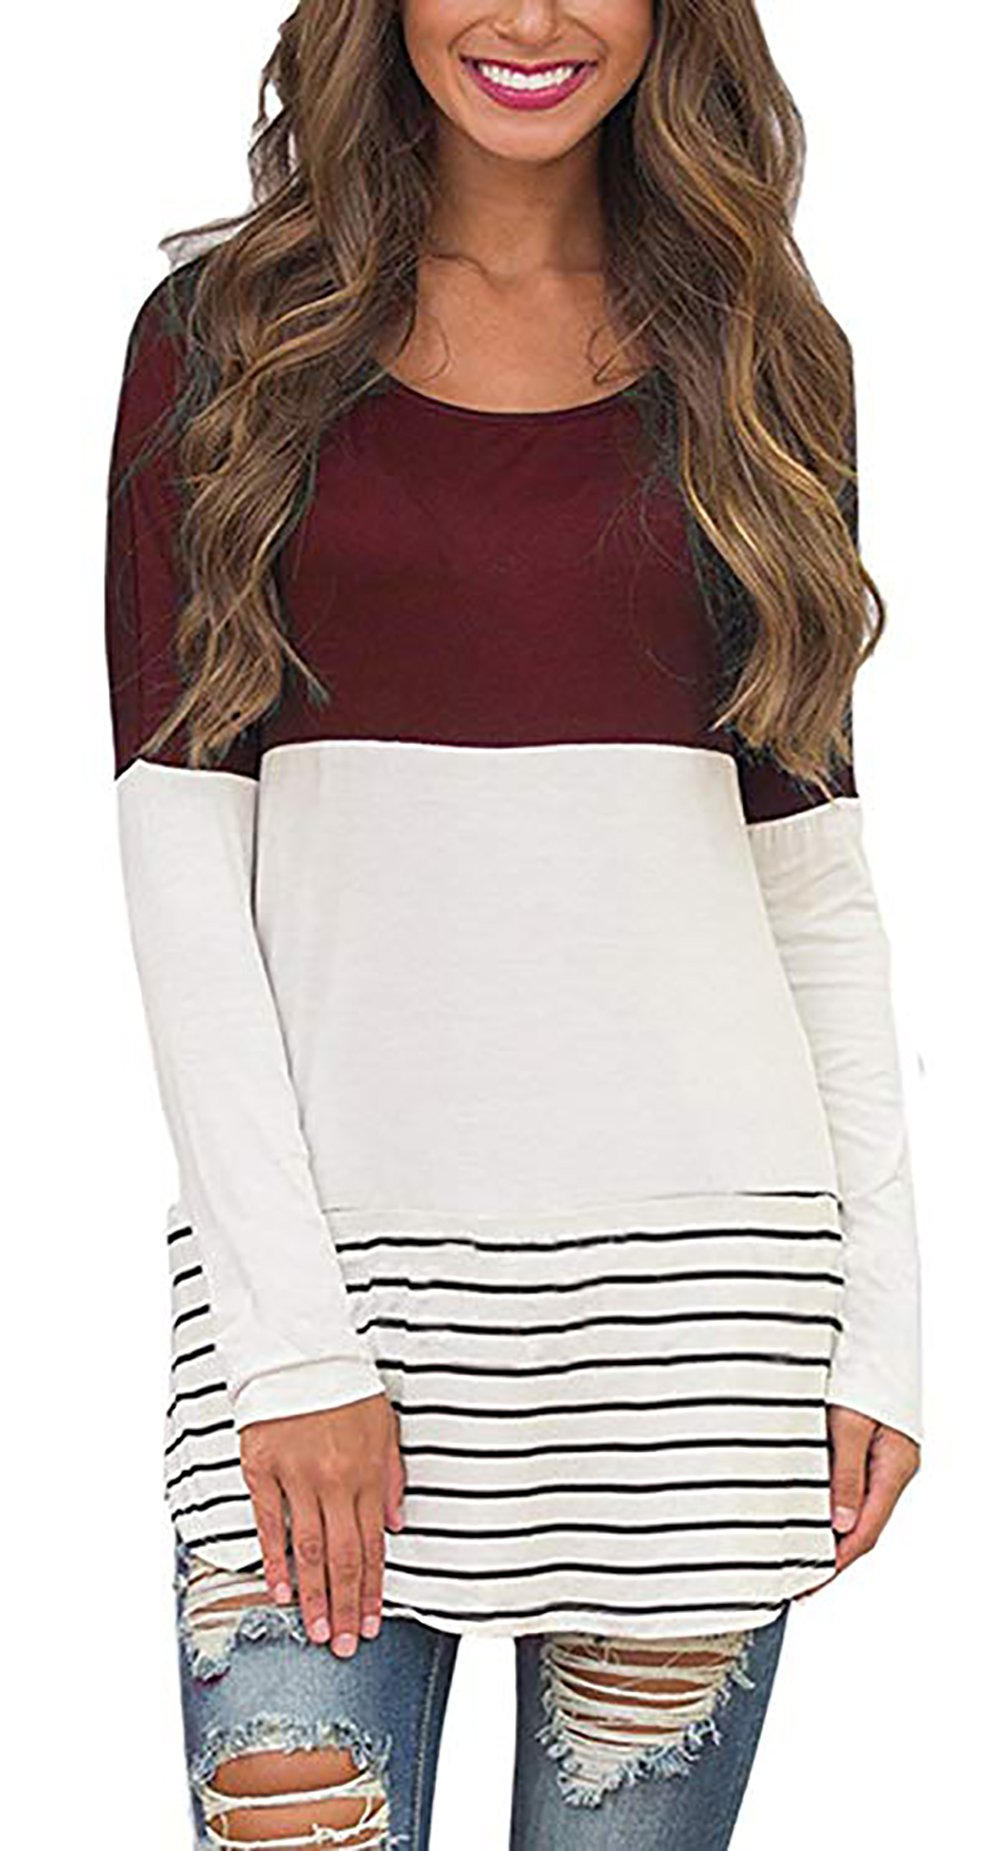 Tunics for Women Long Sleeve Cotton Crewneck Comfy Fit Tee Contrast Colors T-Shirts Tops (M, Wine Red)